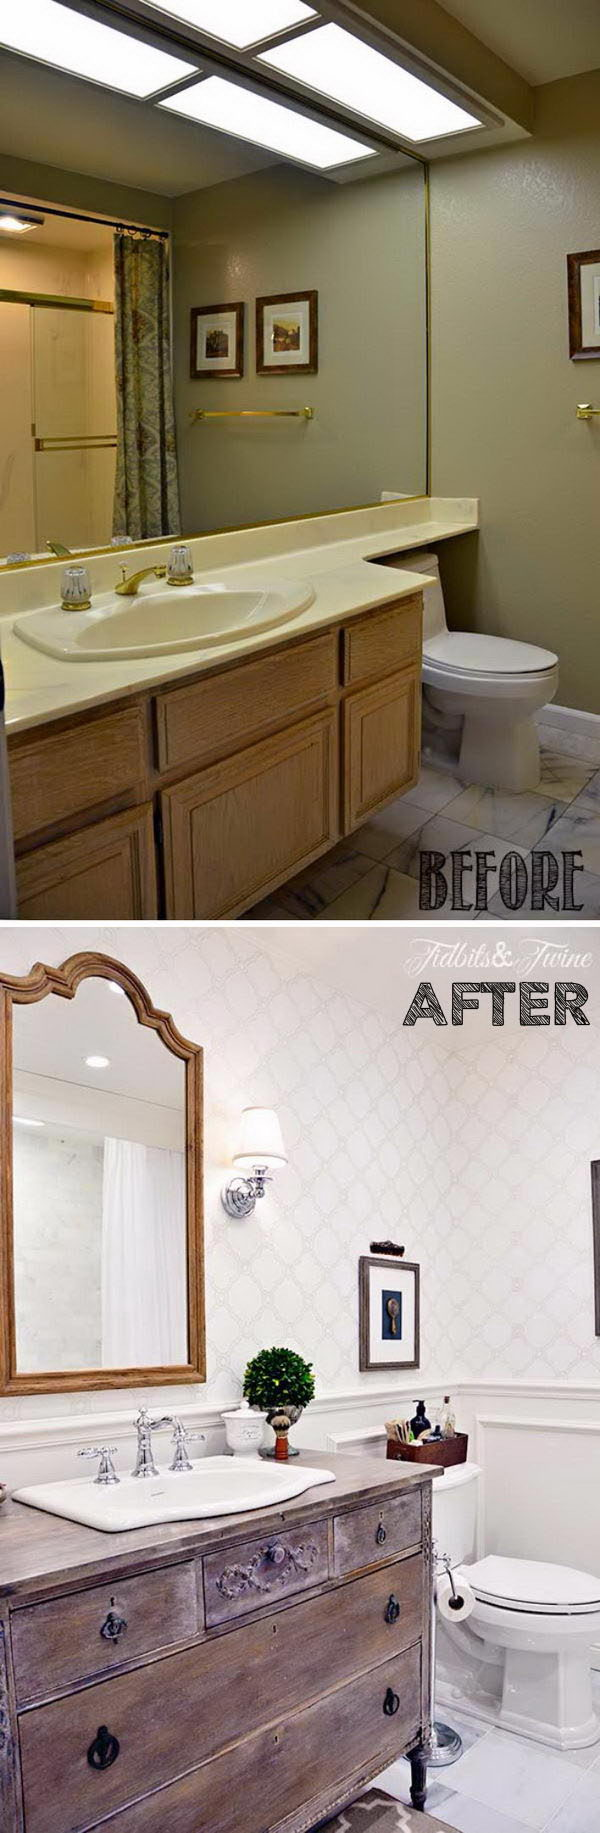 Farmhouse Bathroom Renovation with Wooden Antique Vanity Adding Warmth and Wallpaper Creating The Look of Classic .